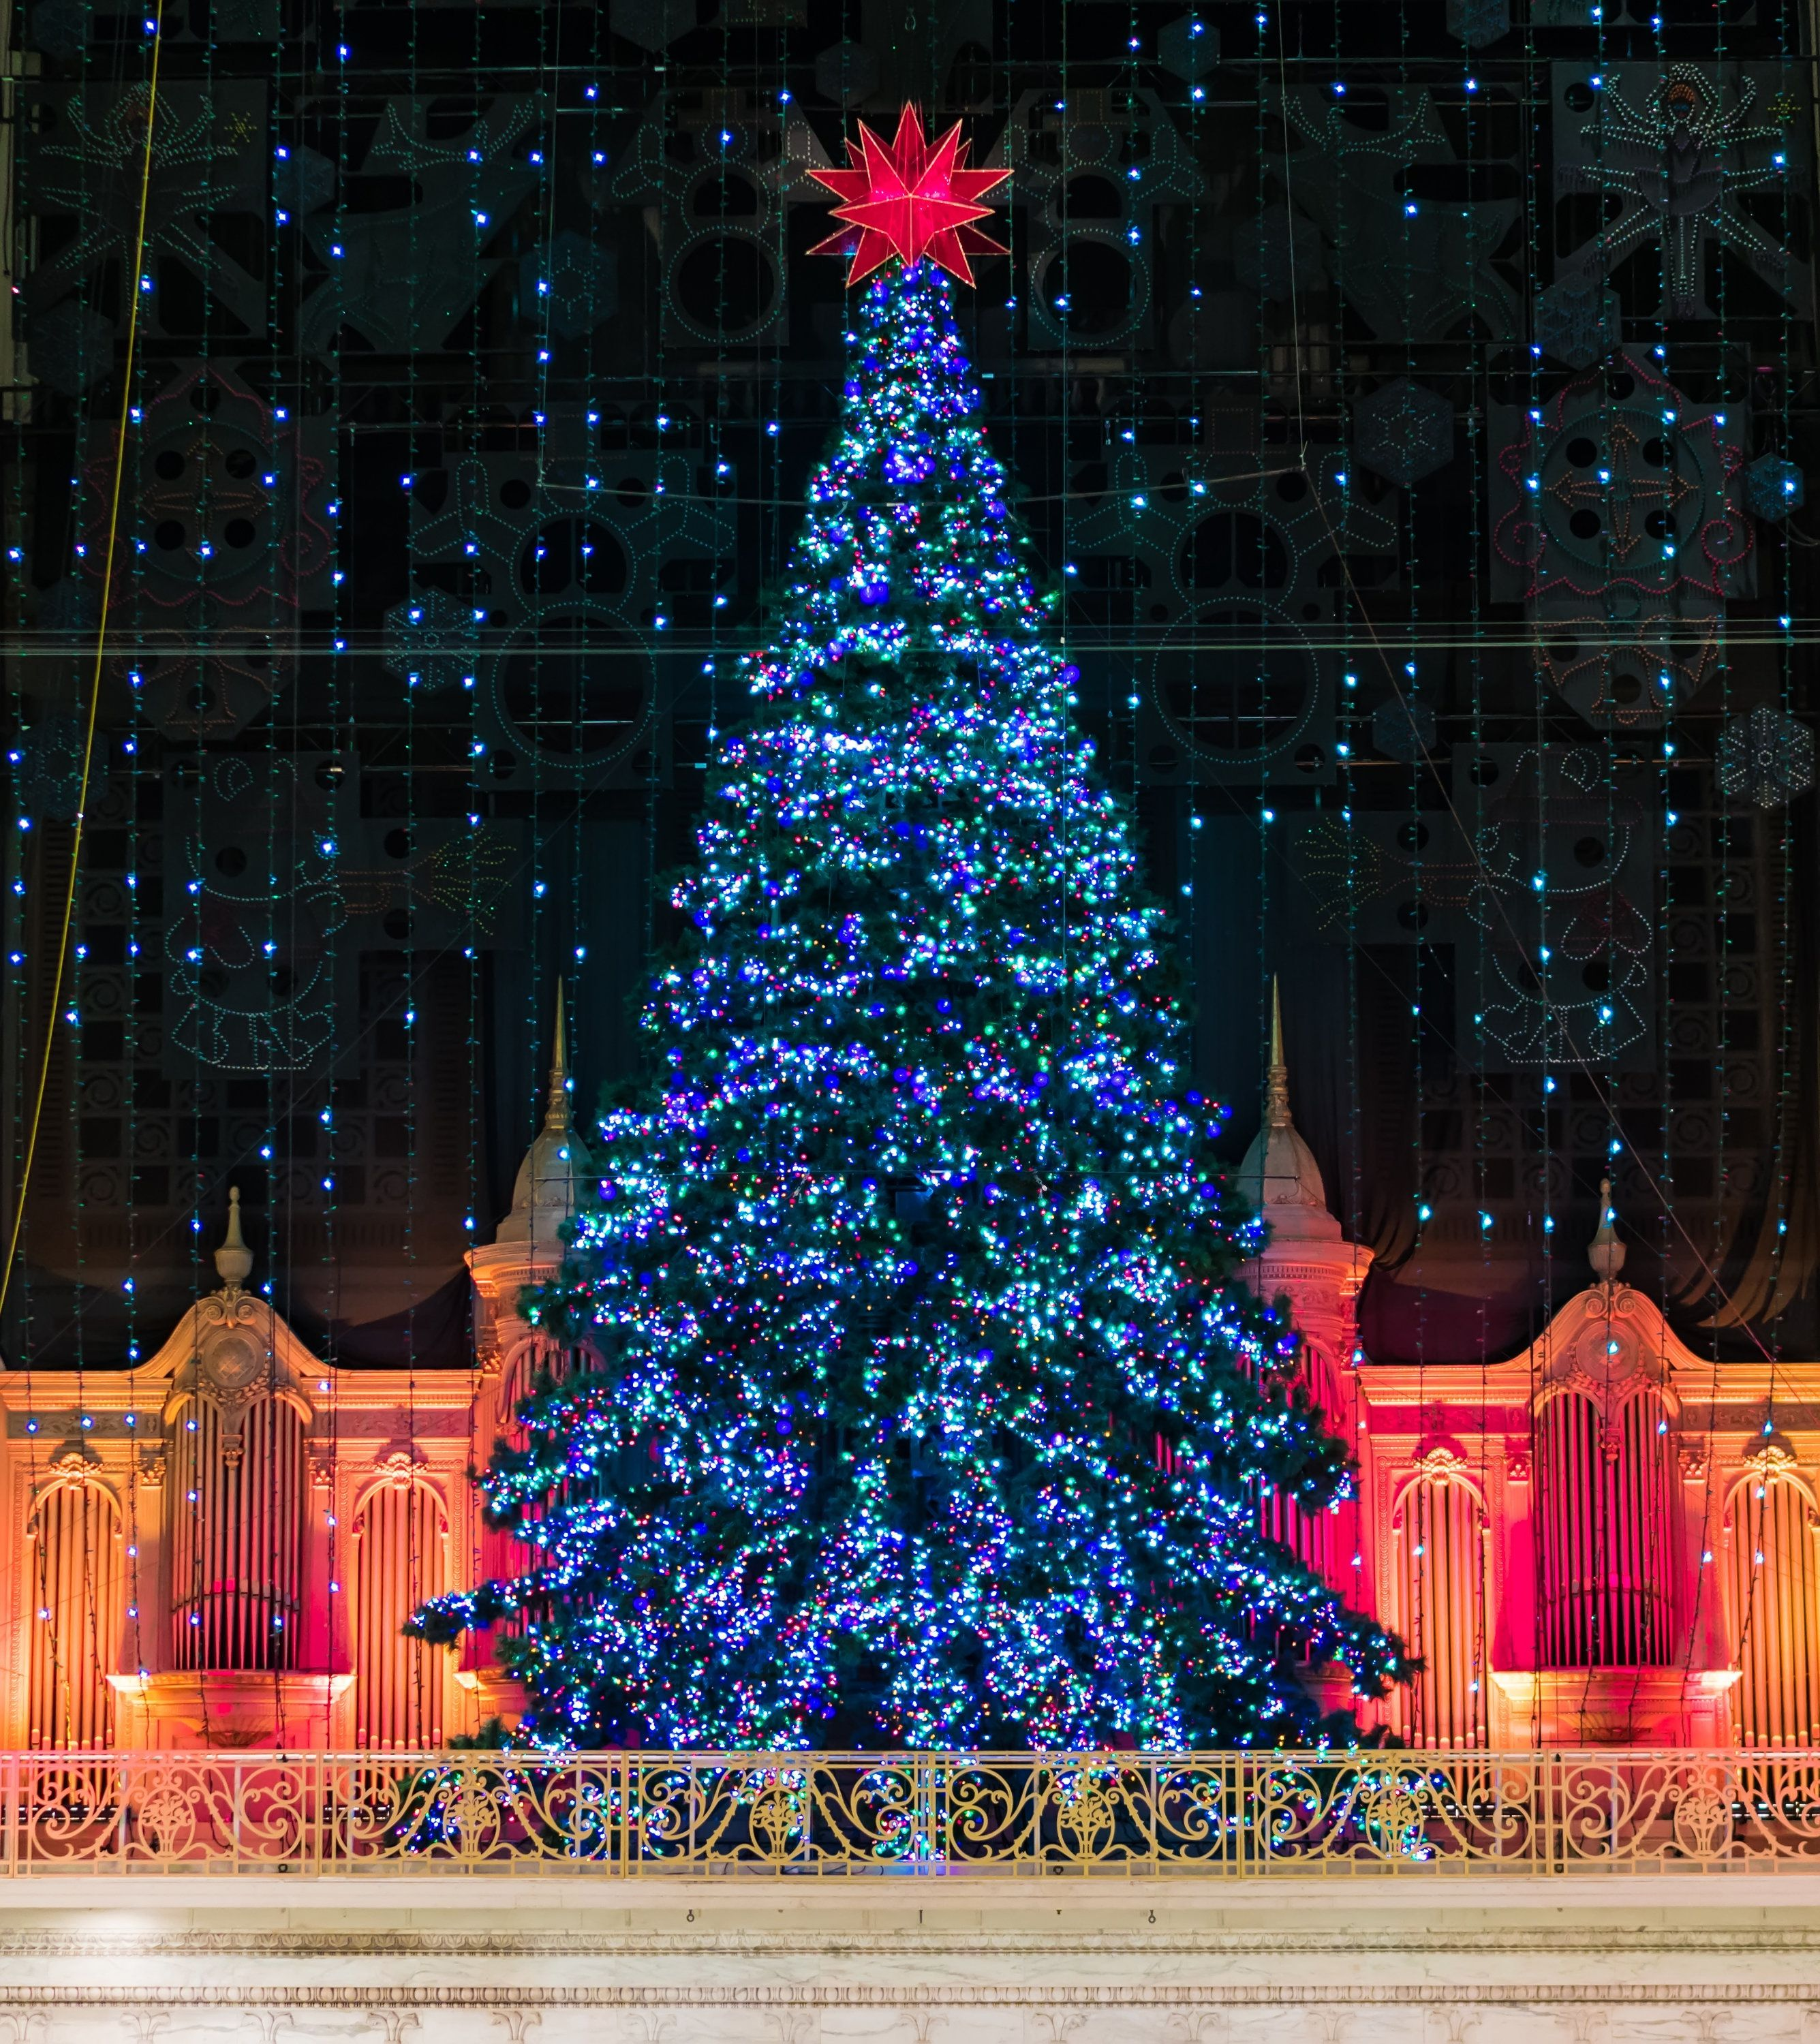 This year's Christmas tree at Macy's Center City in Philadelphia, Pennsylvania. Americans' holiday decorations use 6.6 billio